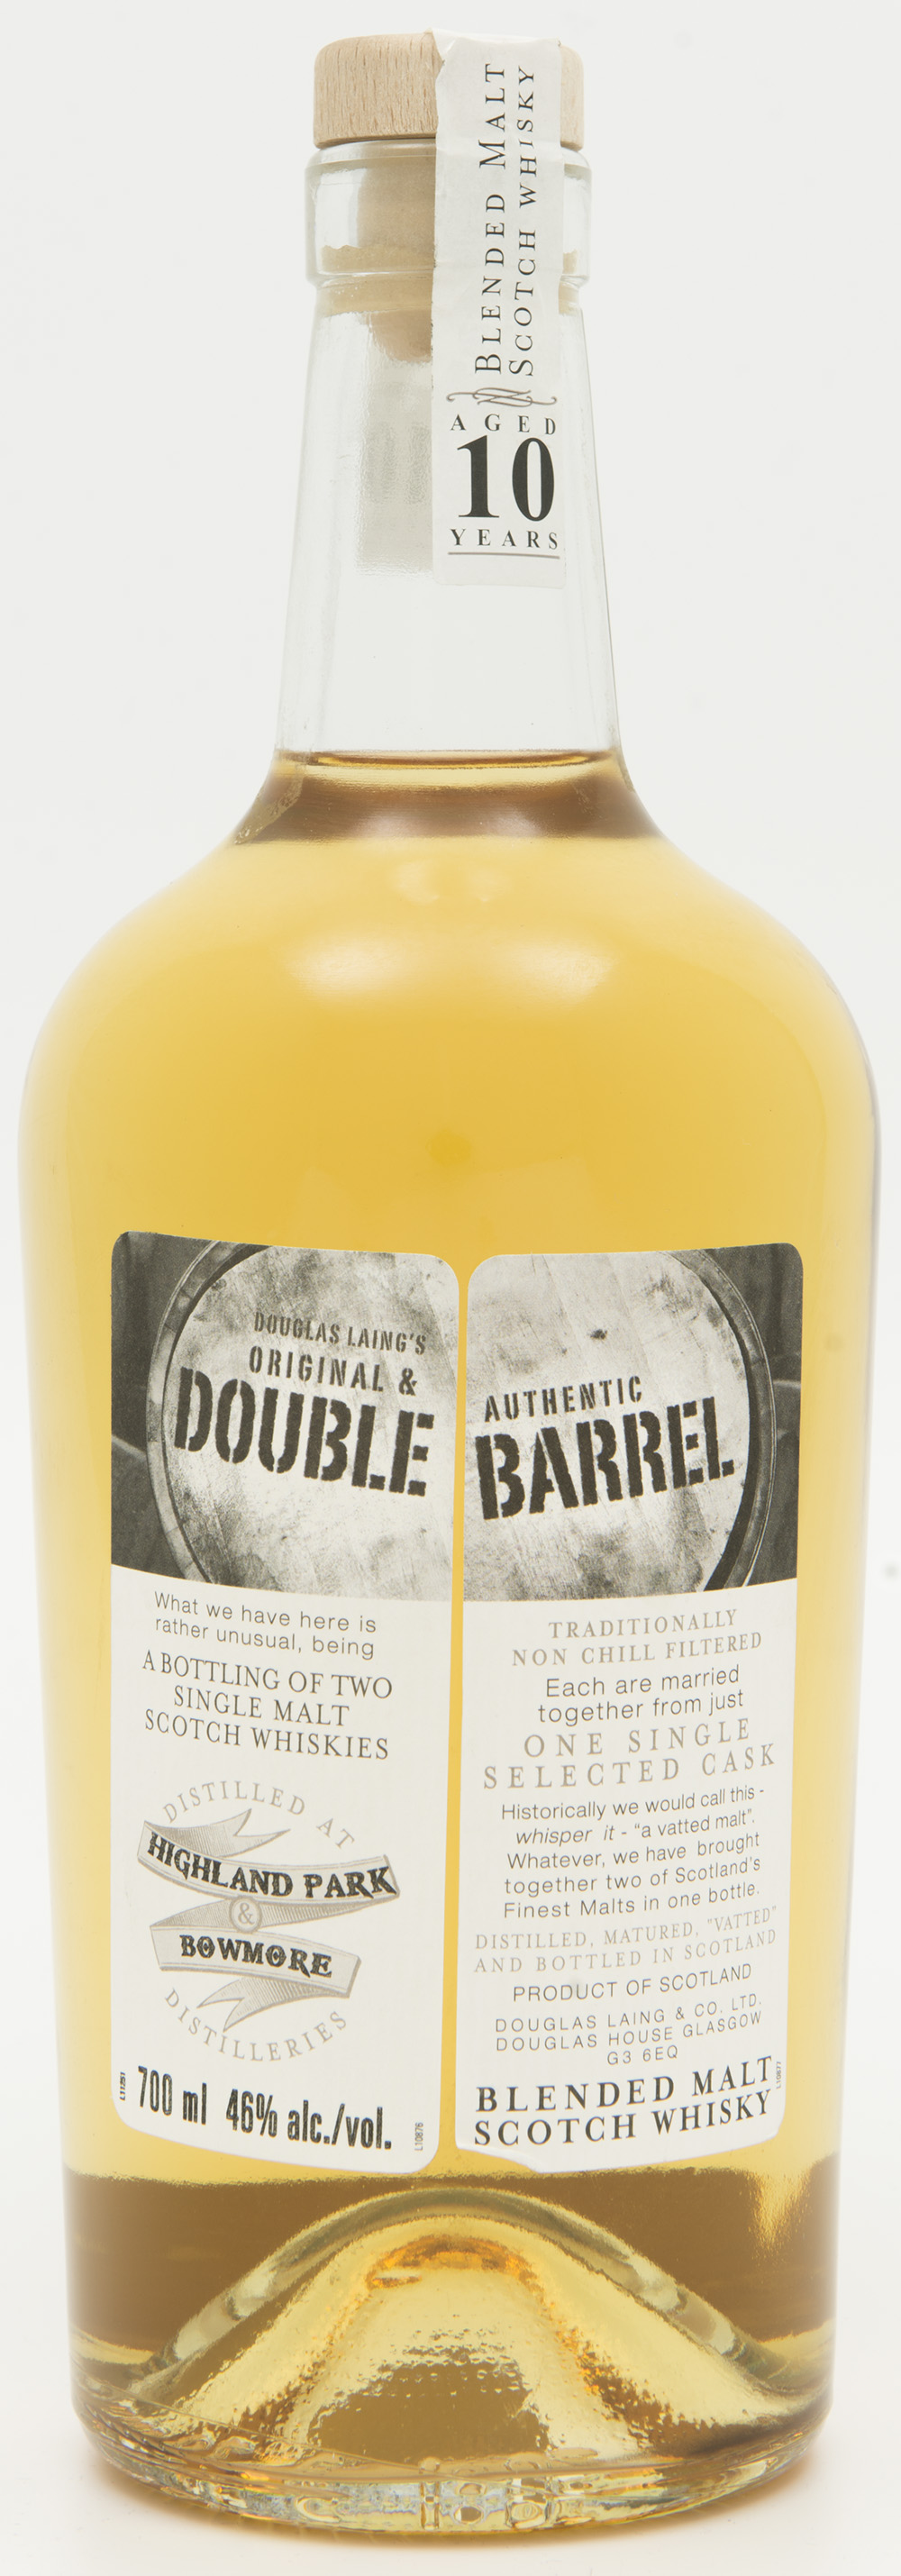 Billede: DSC_3675 Douglas Laing's Double Barrel - Highland Park and Bowmore - bottle.jpg